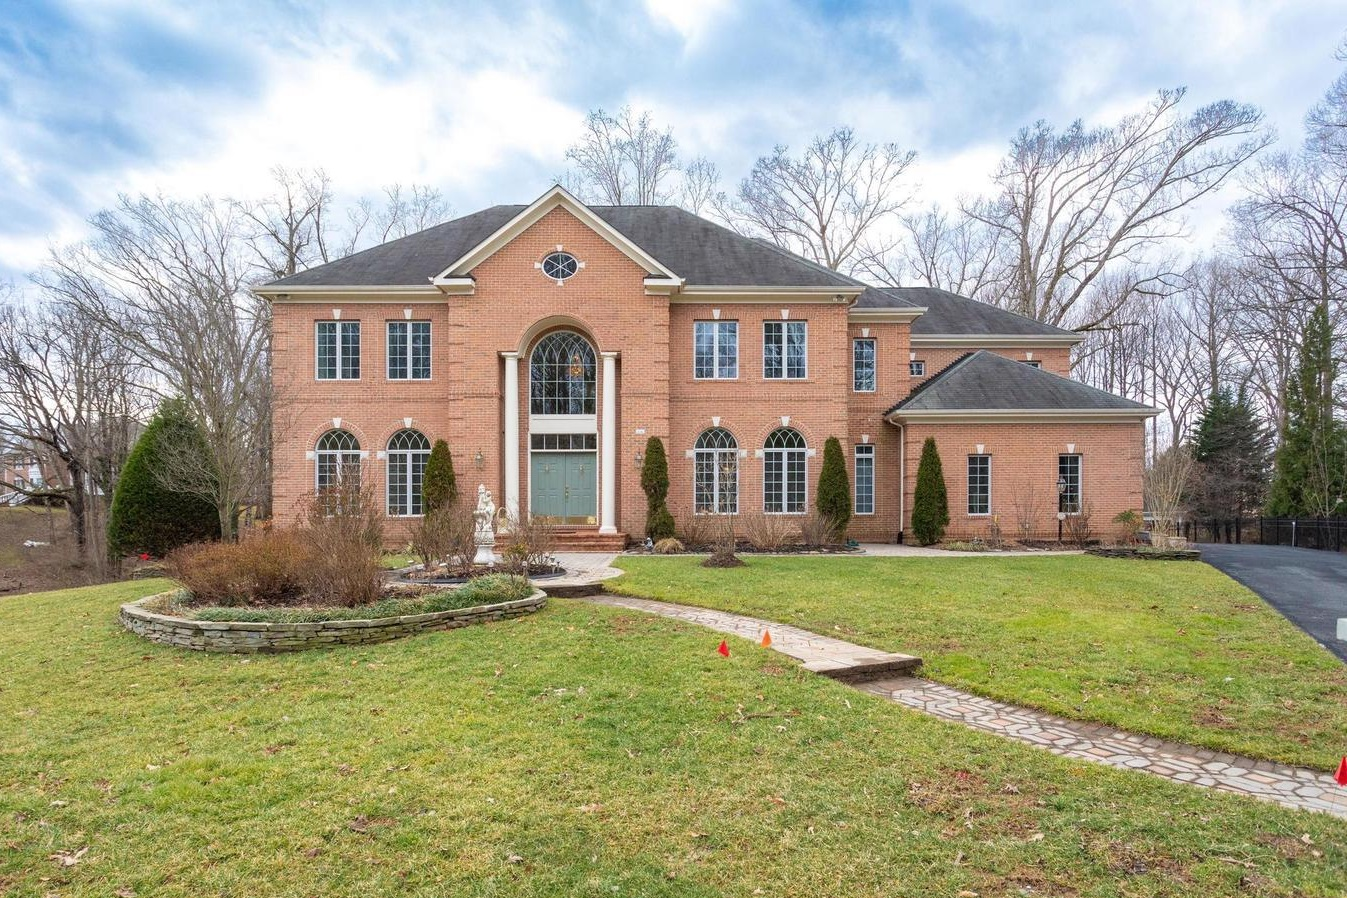 2642 Oak Valley Drive | Vienna, VA Sold for $1,647,000